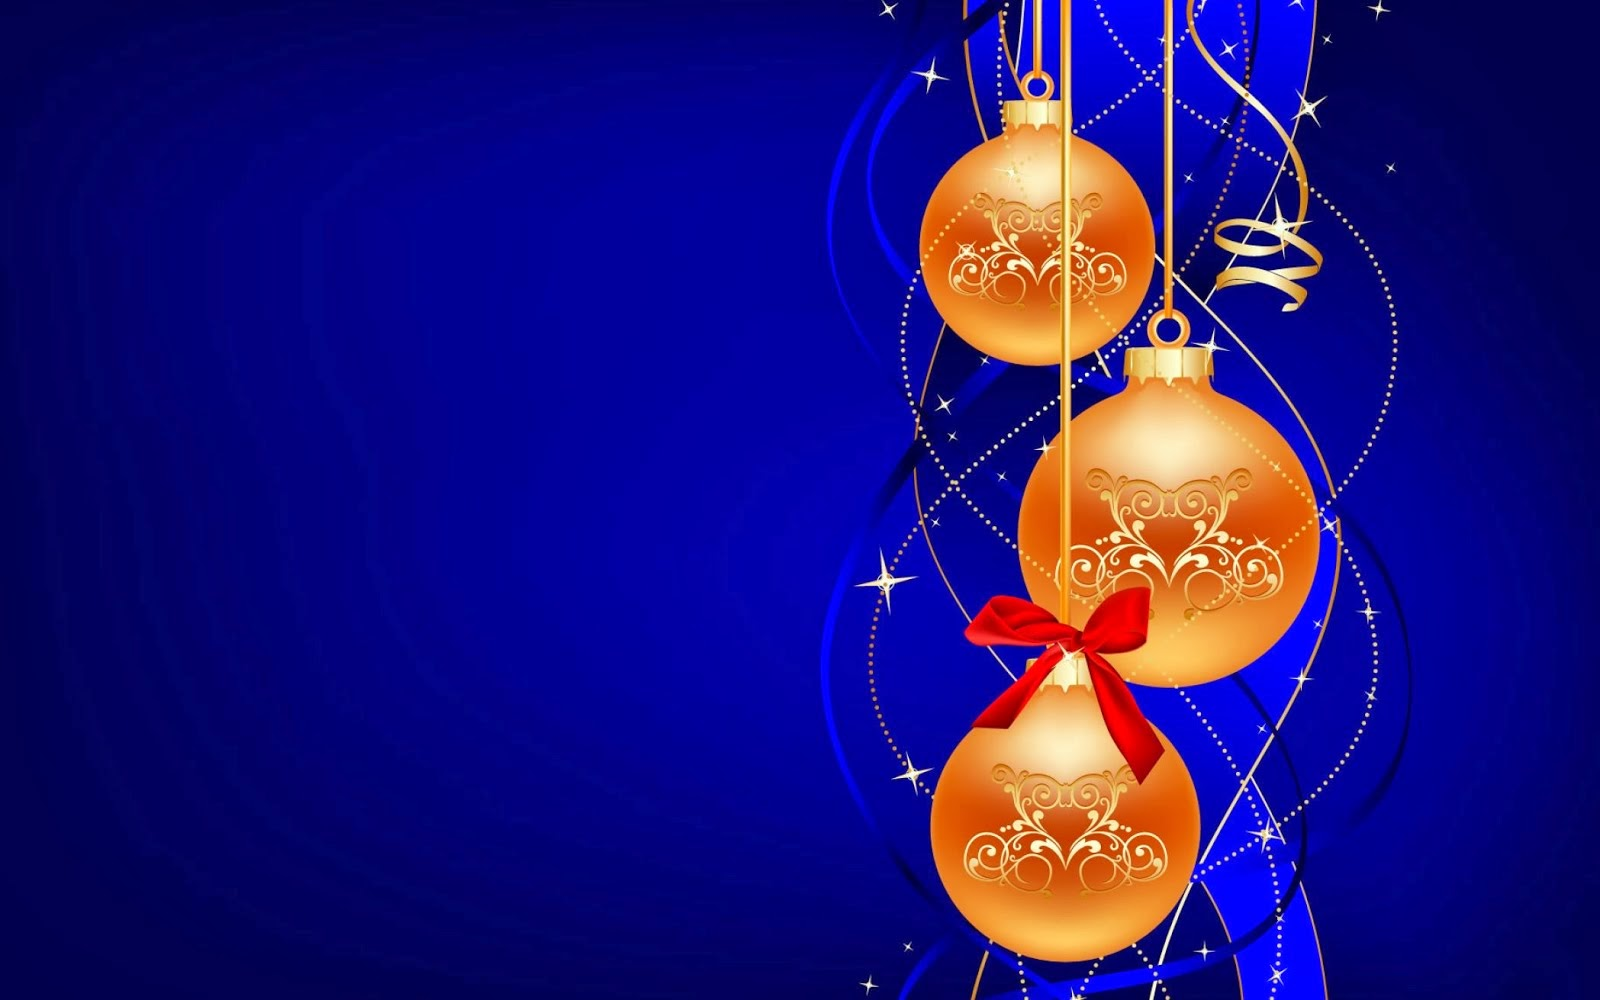 animated christmas wallpaper for windows 7 | wallpaper animated